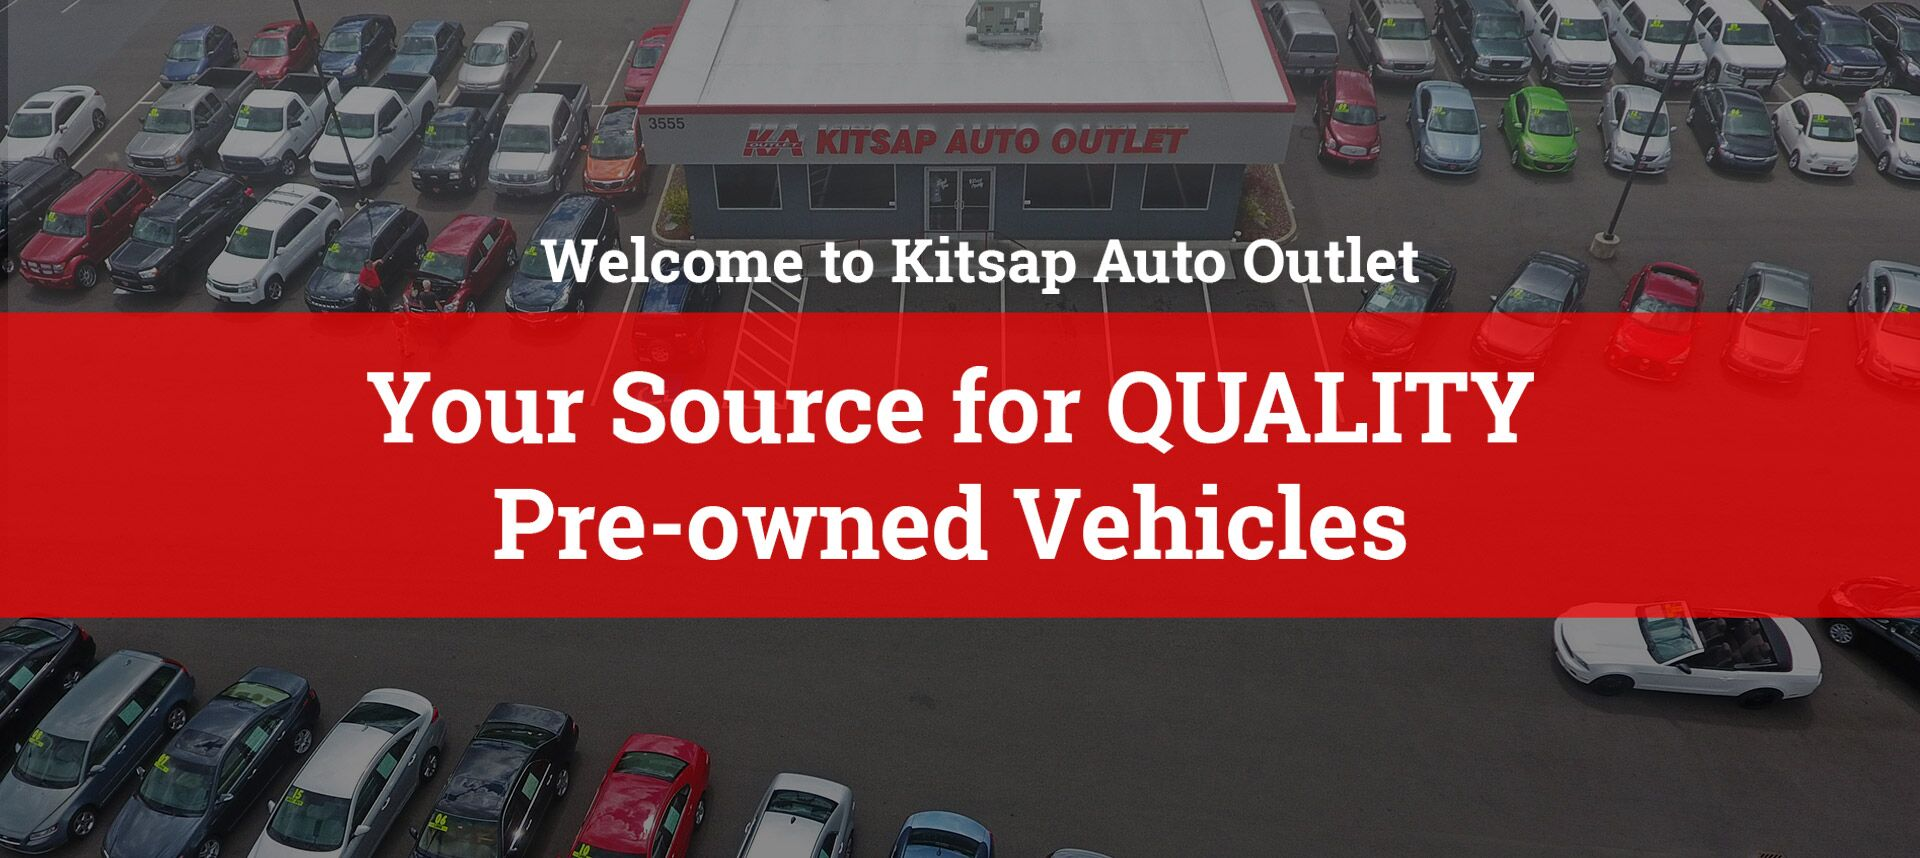 Kitsap Auto Outlet Intro